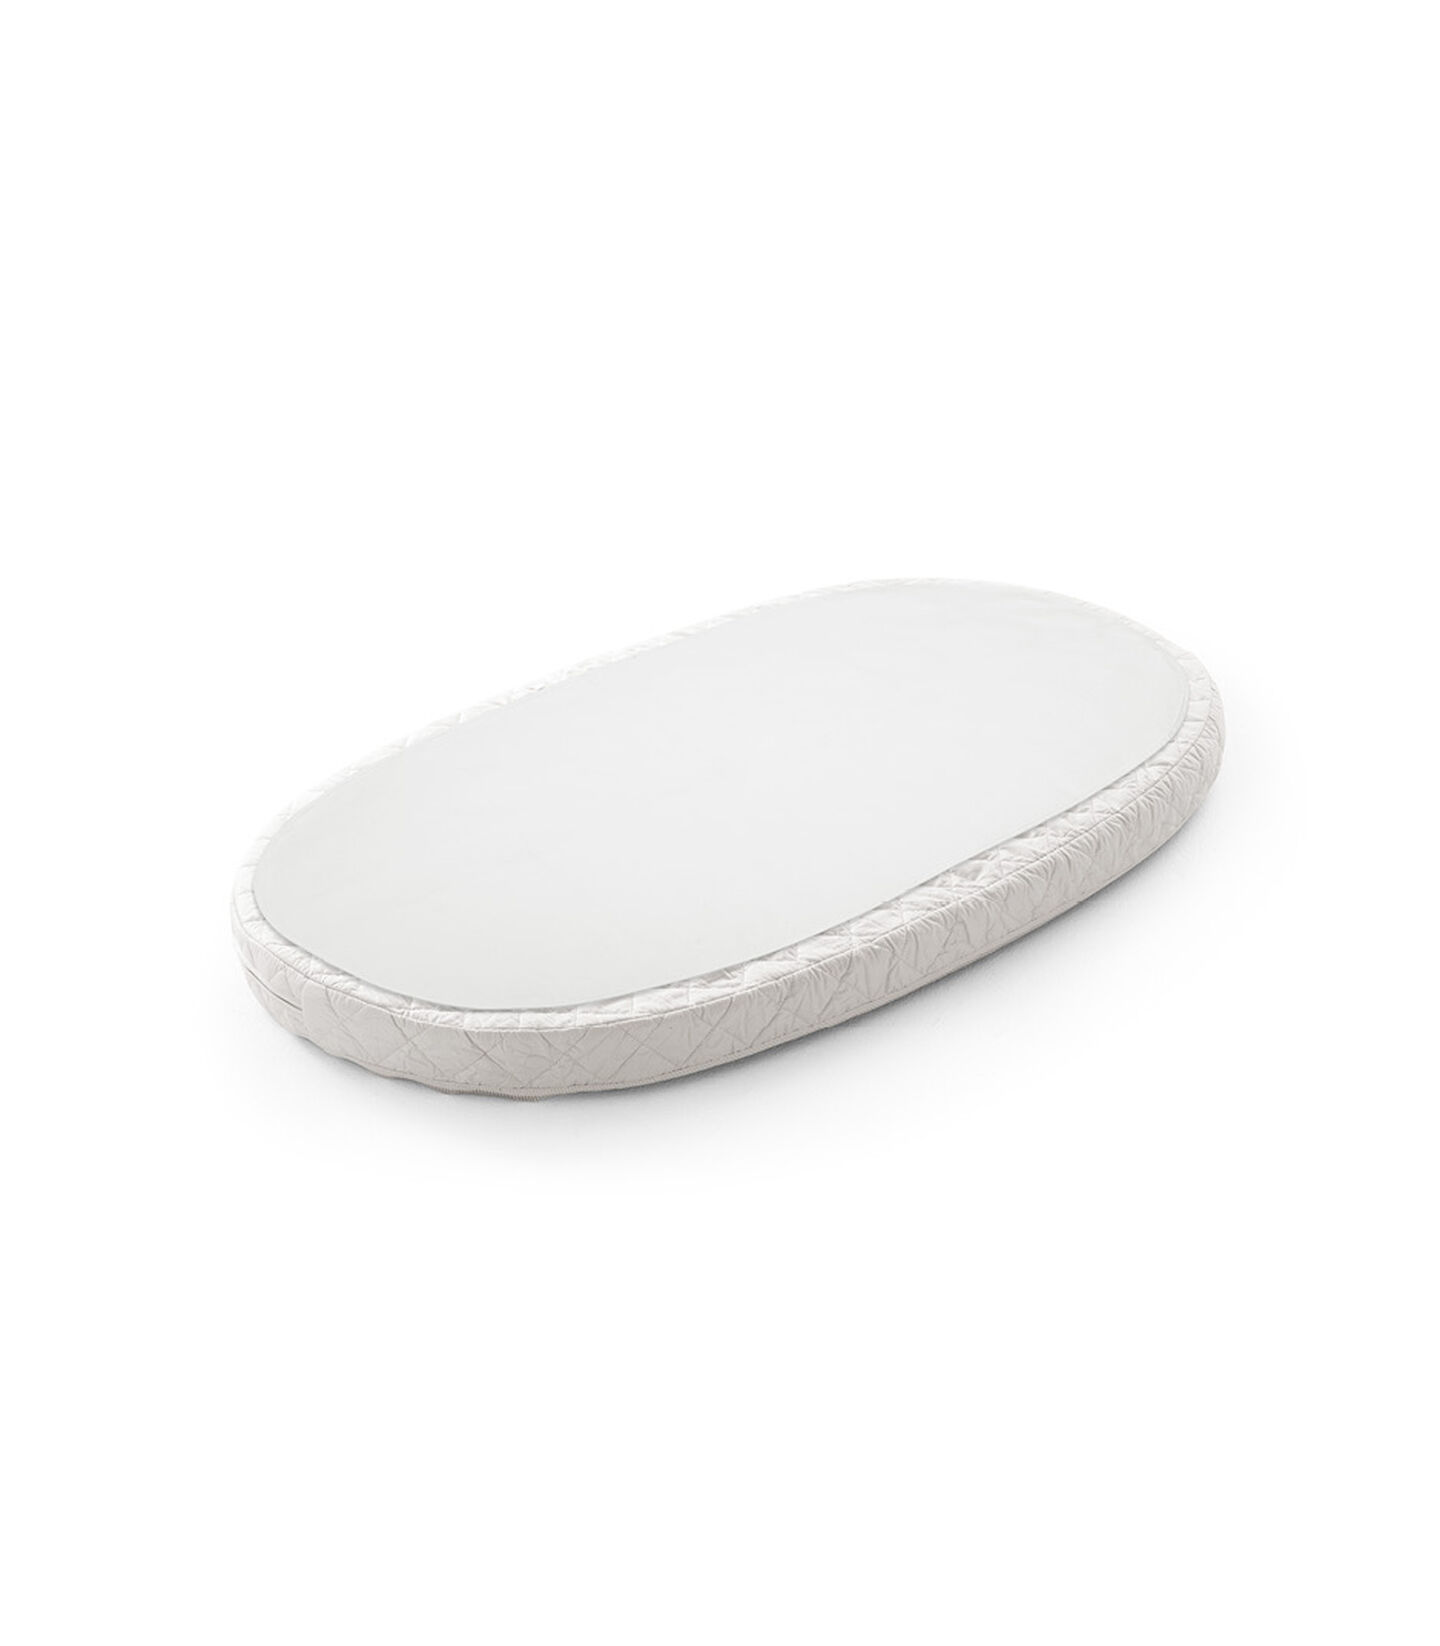 Stokke® Sleepi™ Nässestop Oval, , mainview view 2